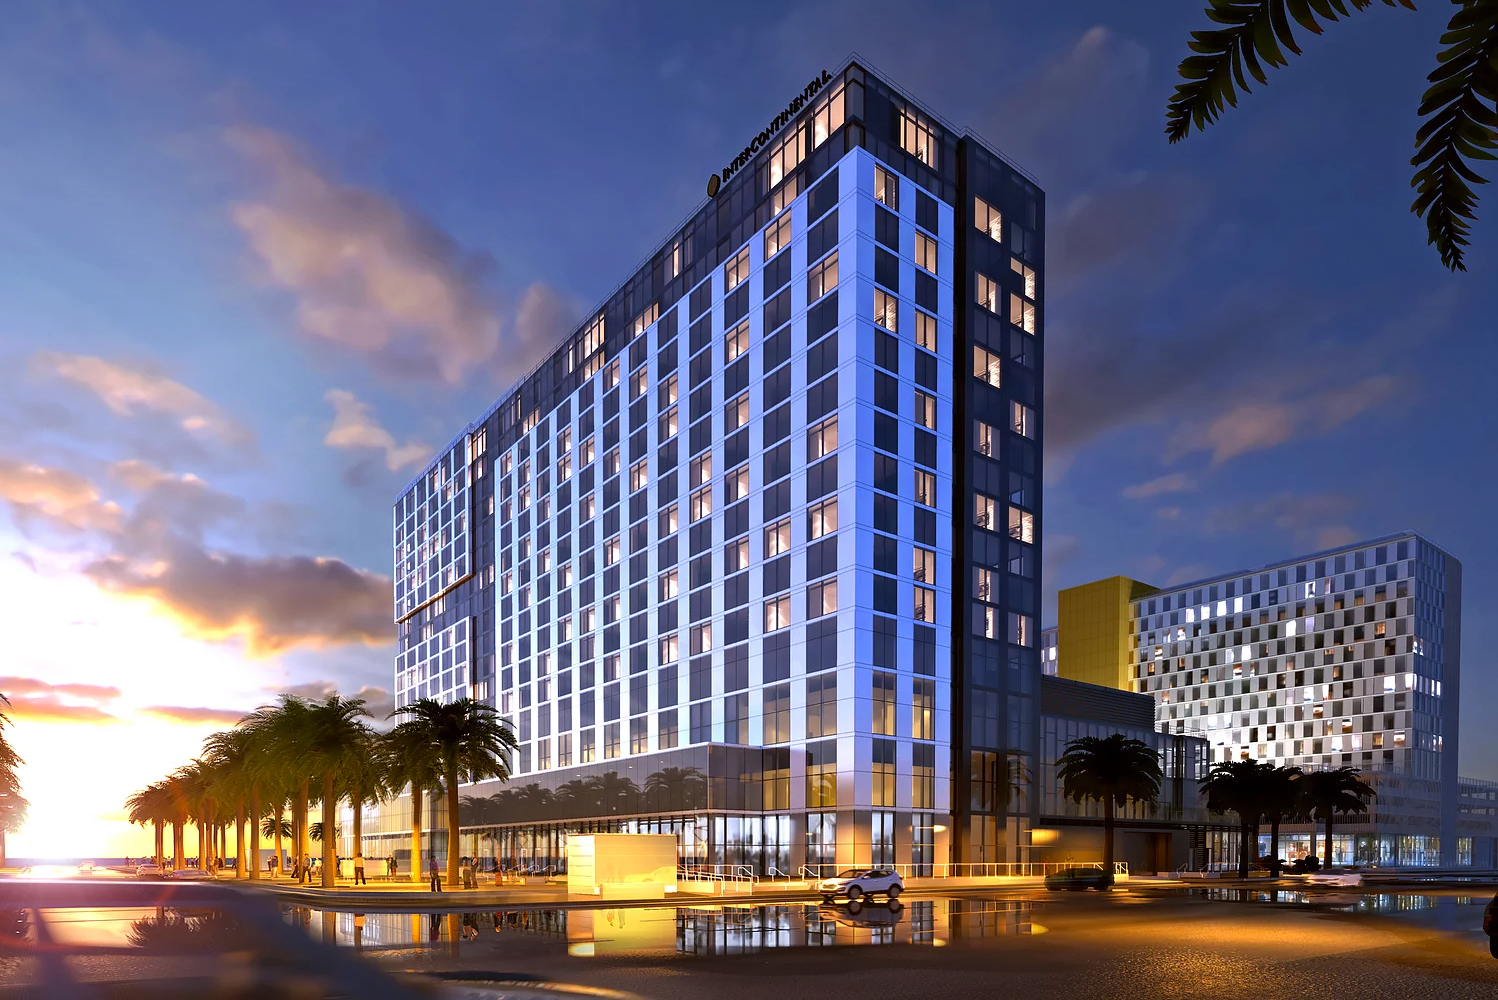 InterContinental San Diego is scheduled to open this September.